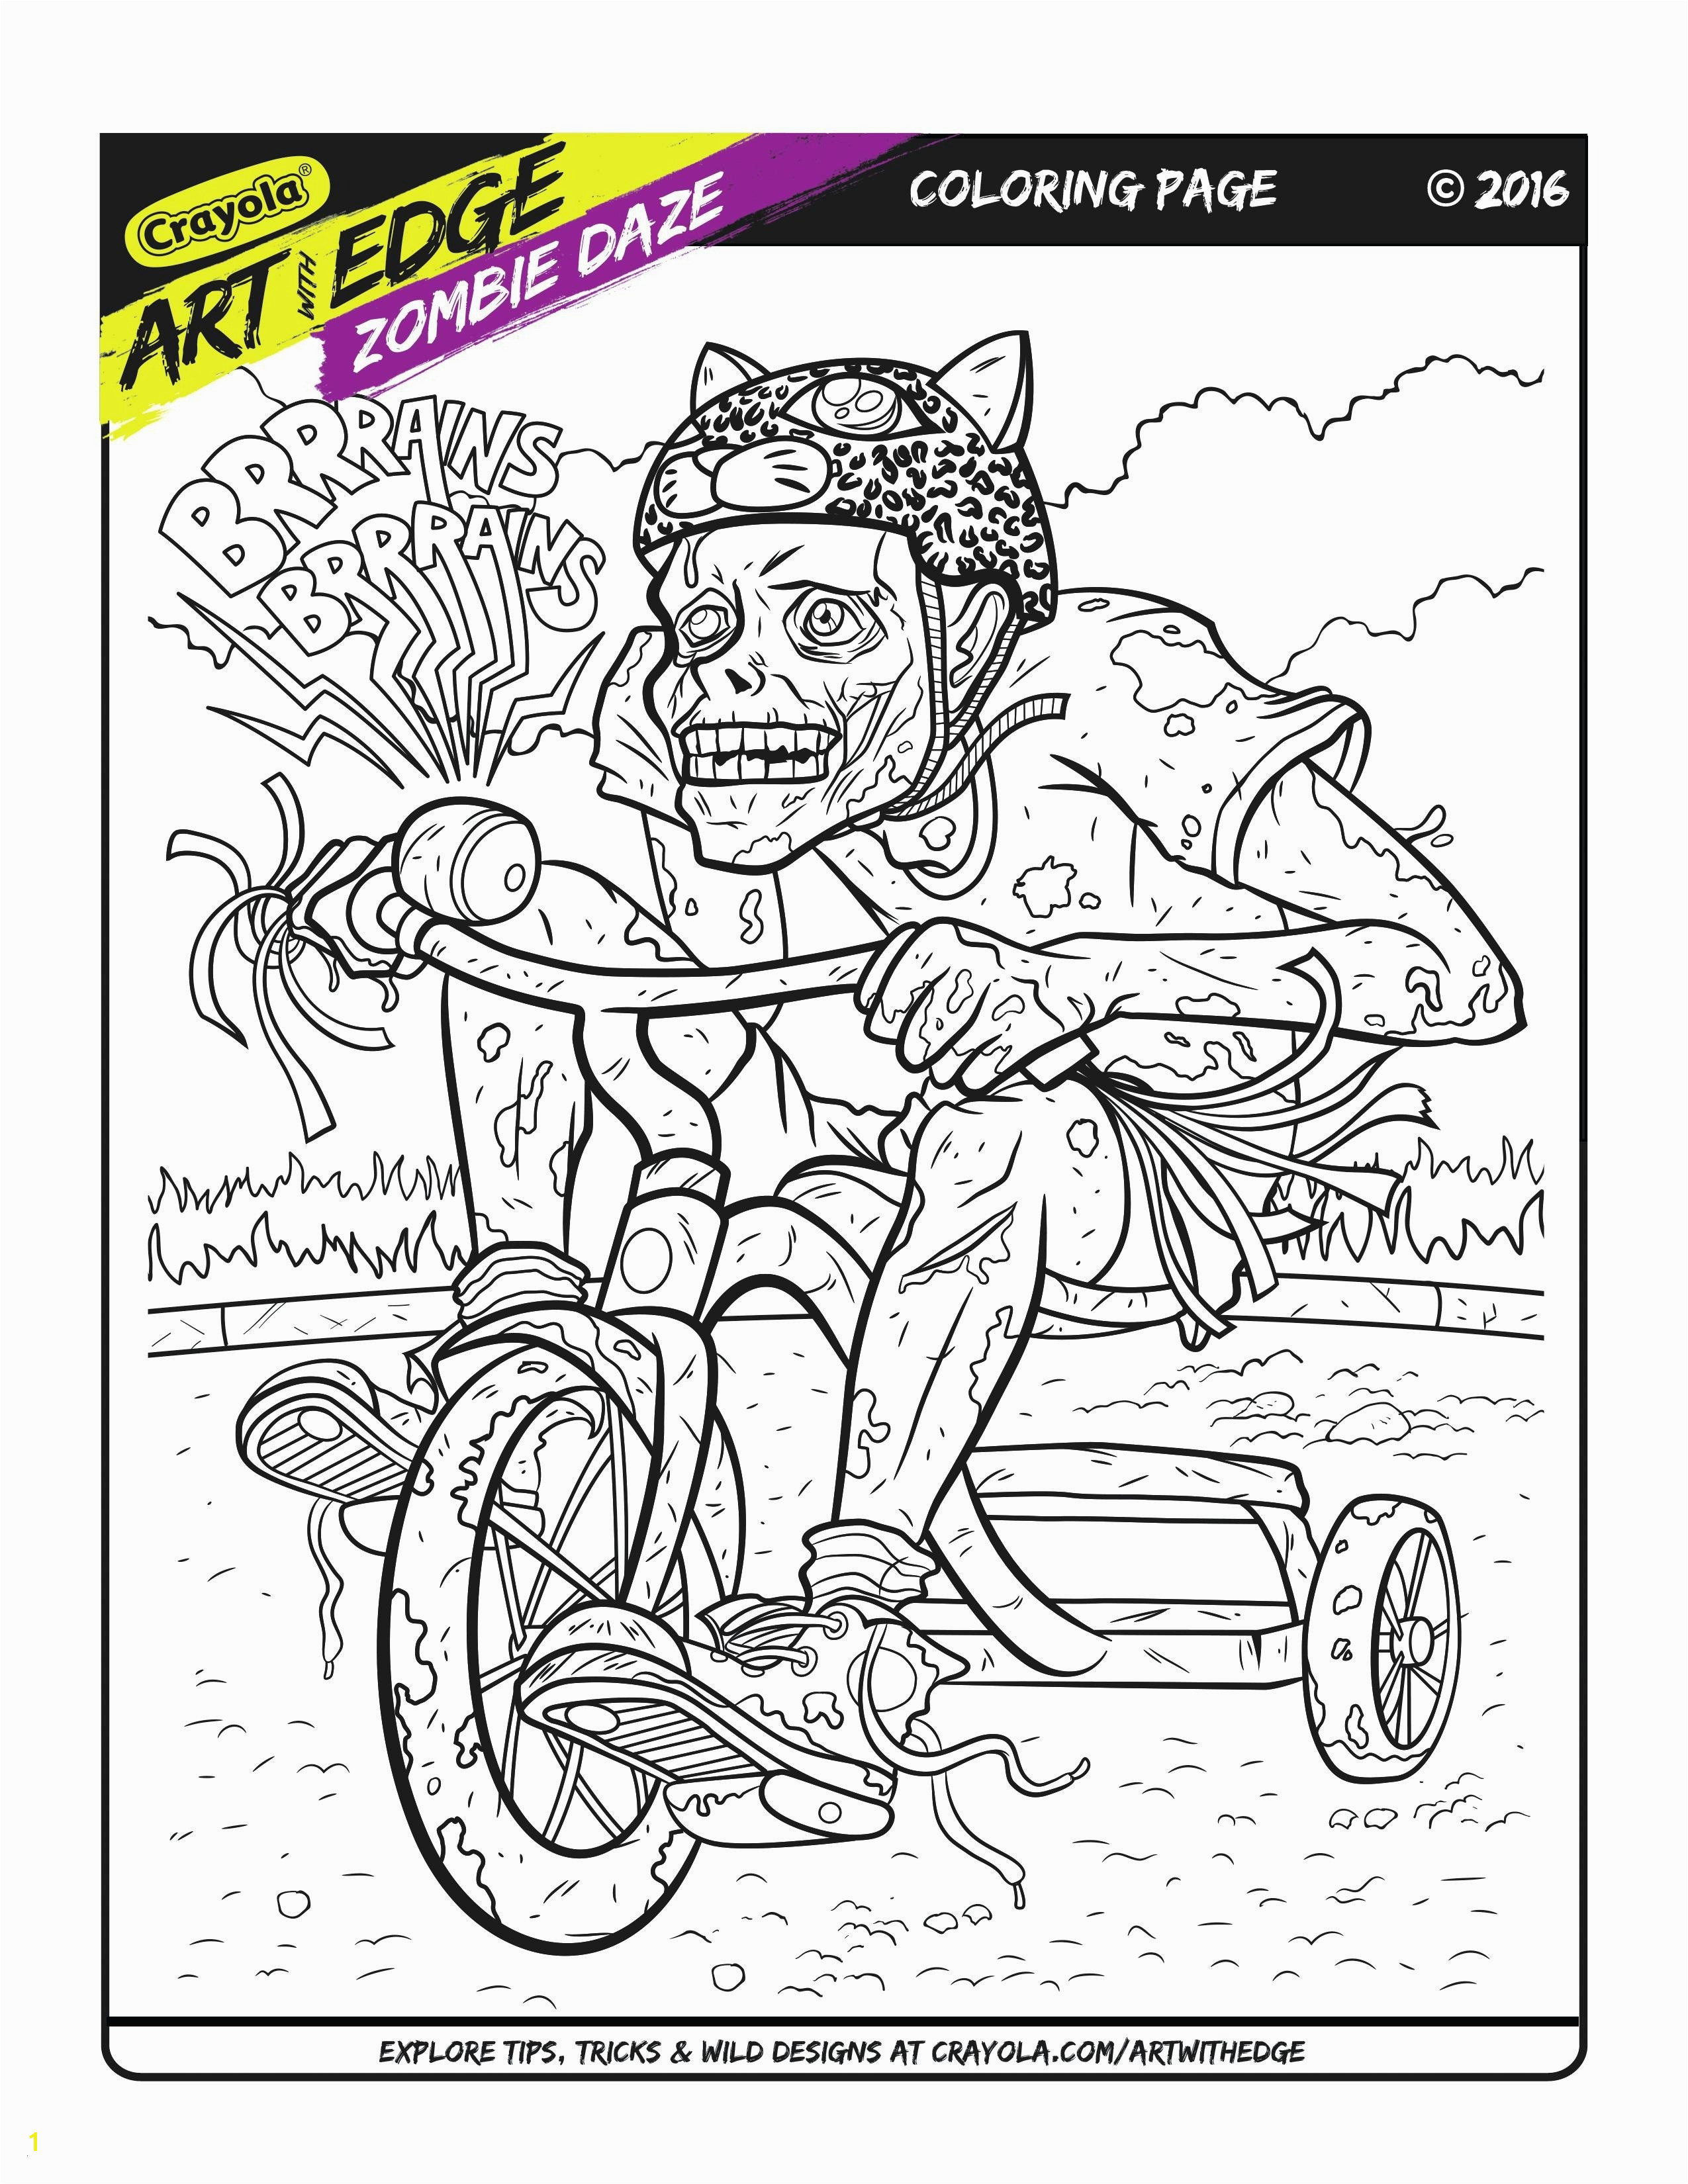 Free Coloring Pages Puerto Rico Inspirational Free Coloring Pages Puerto Rico Best Puerto Rico Coloring